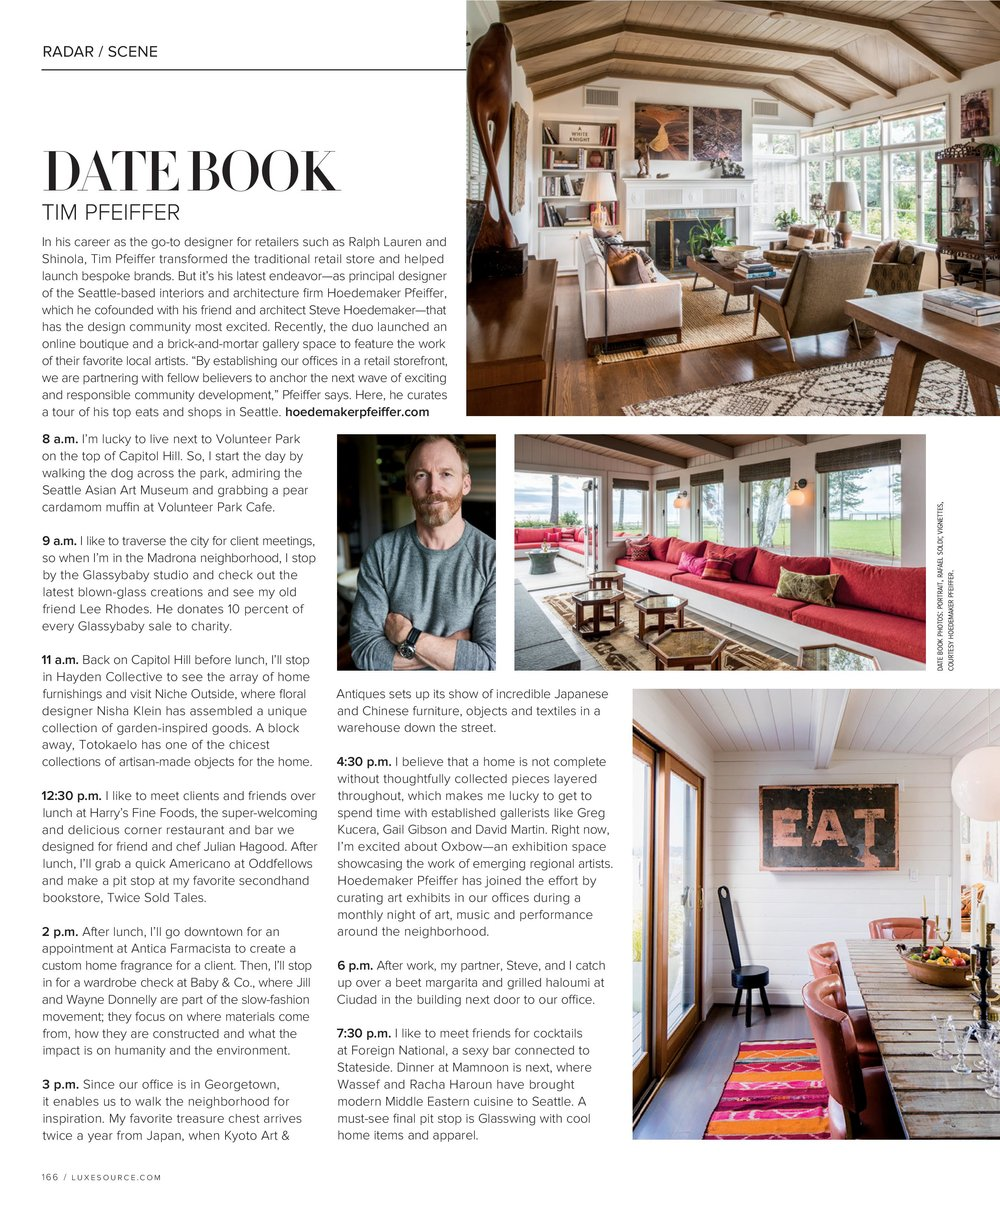 Luxe-2017-Sept-Oct-page-002.jpg